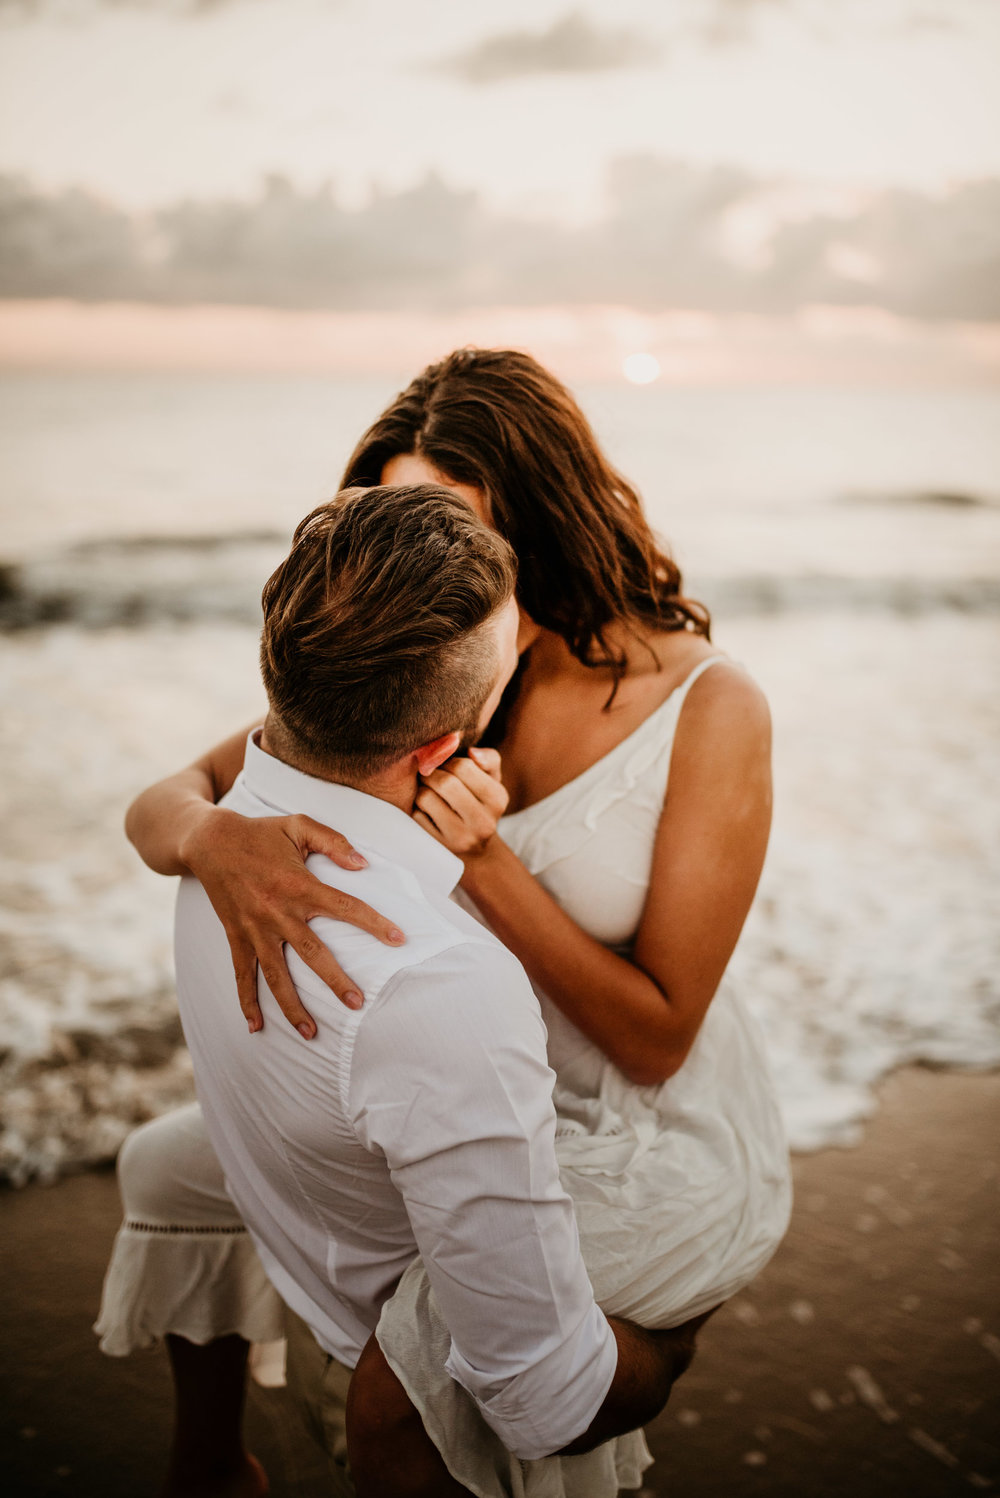 The Raw Photographer - Cairns Wedding Photographer - Engaged Engagement - Beach location - Candid Photography Queensland-7.jpg